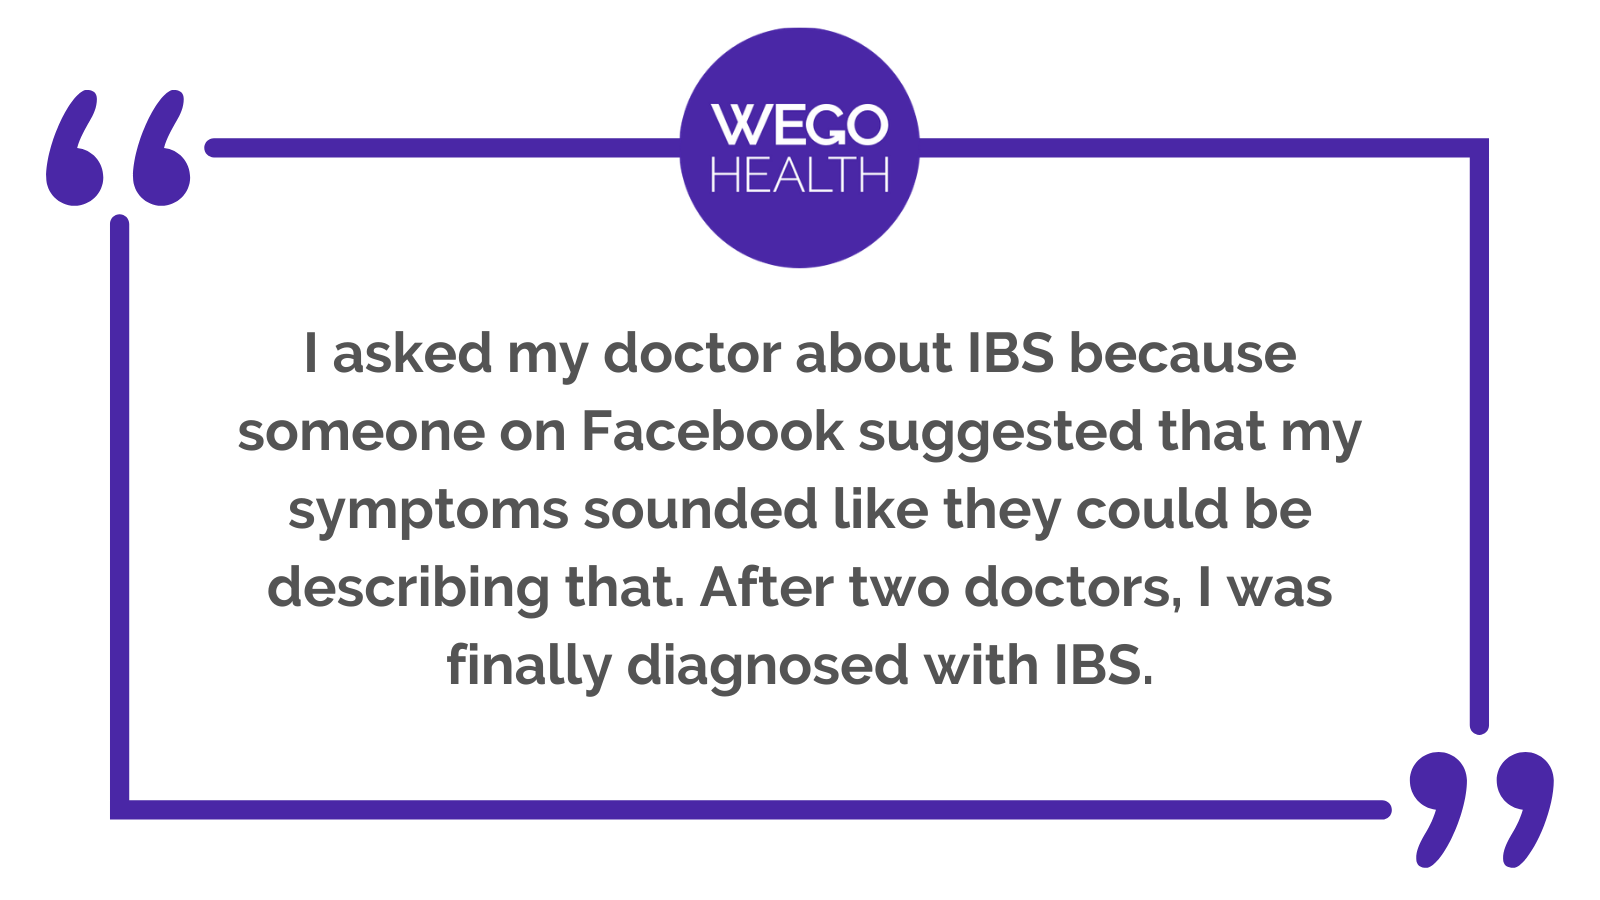 WEGO Health Patient influencer quote about sharing specific medical condition information